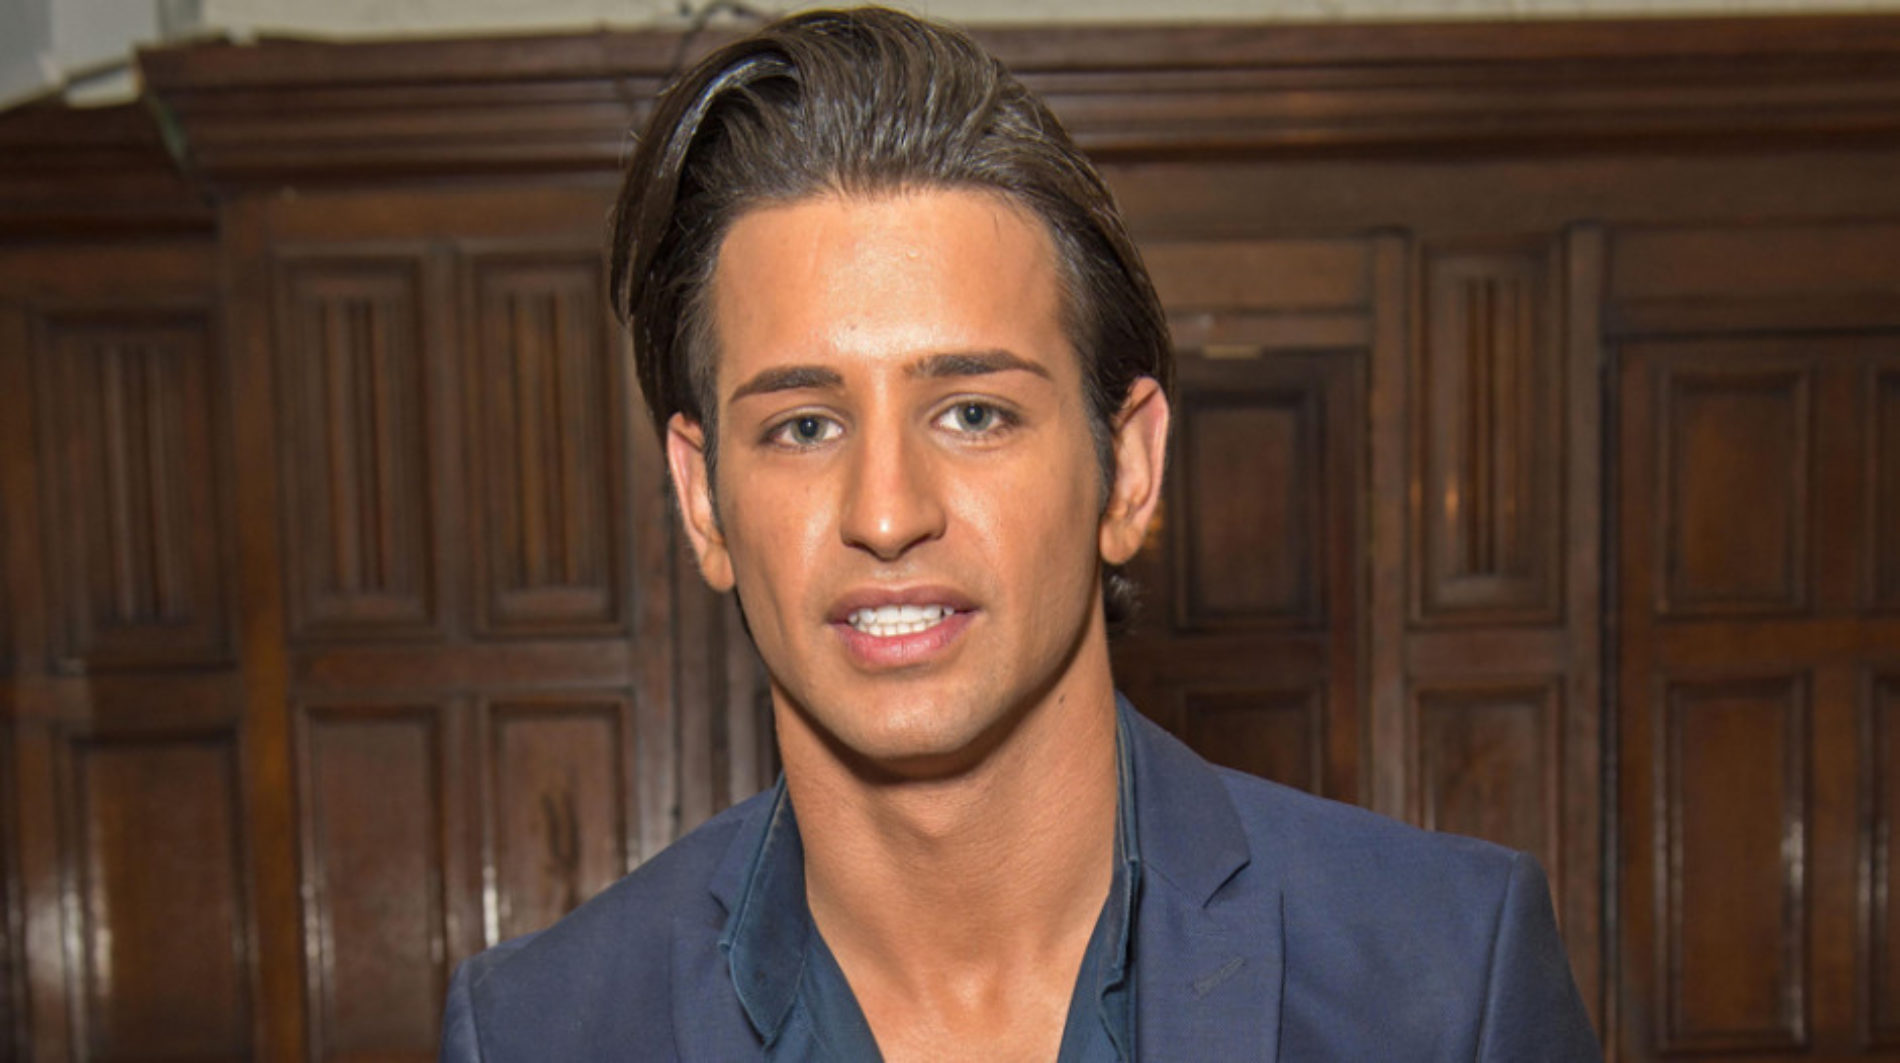 Reality TV star Ollie Locke has released his own dating app to find the perfect man